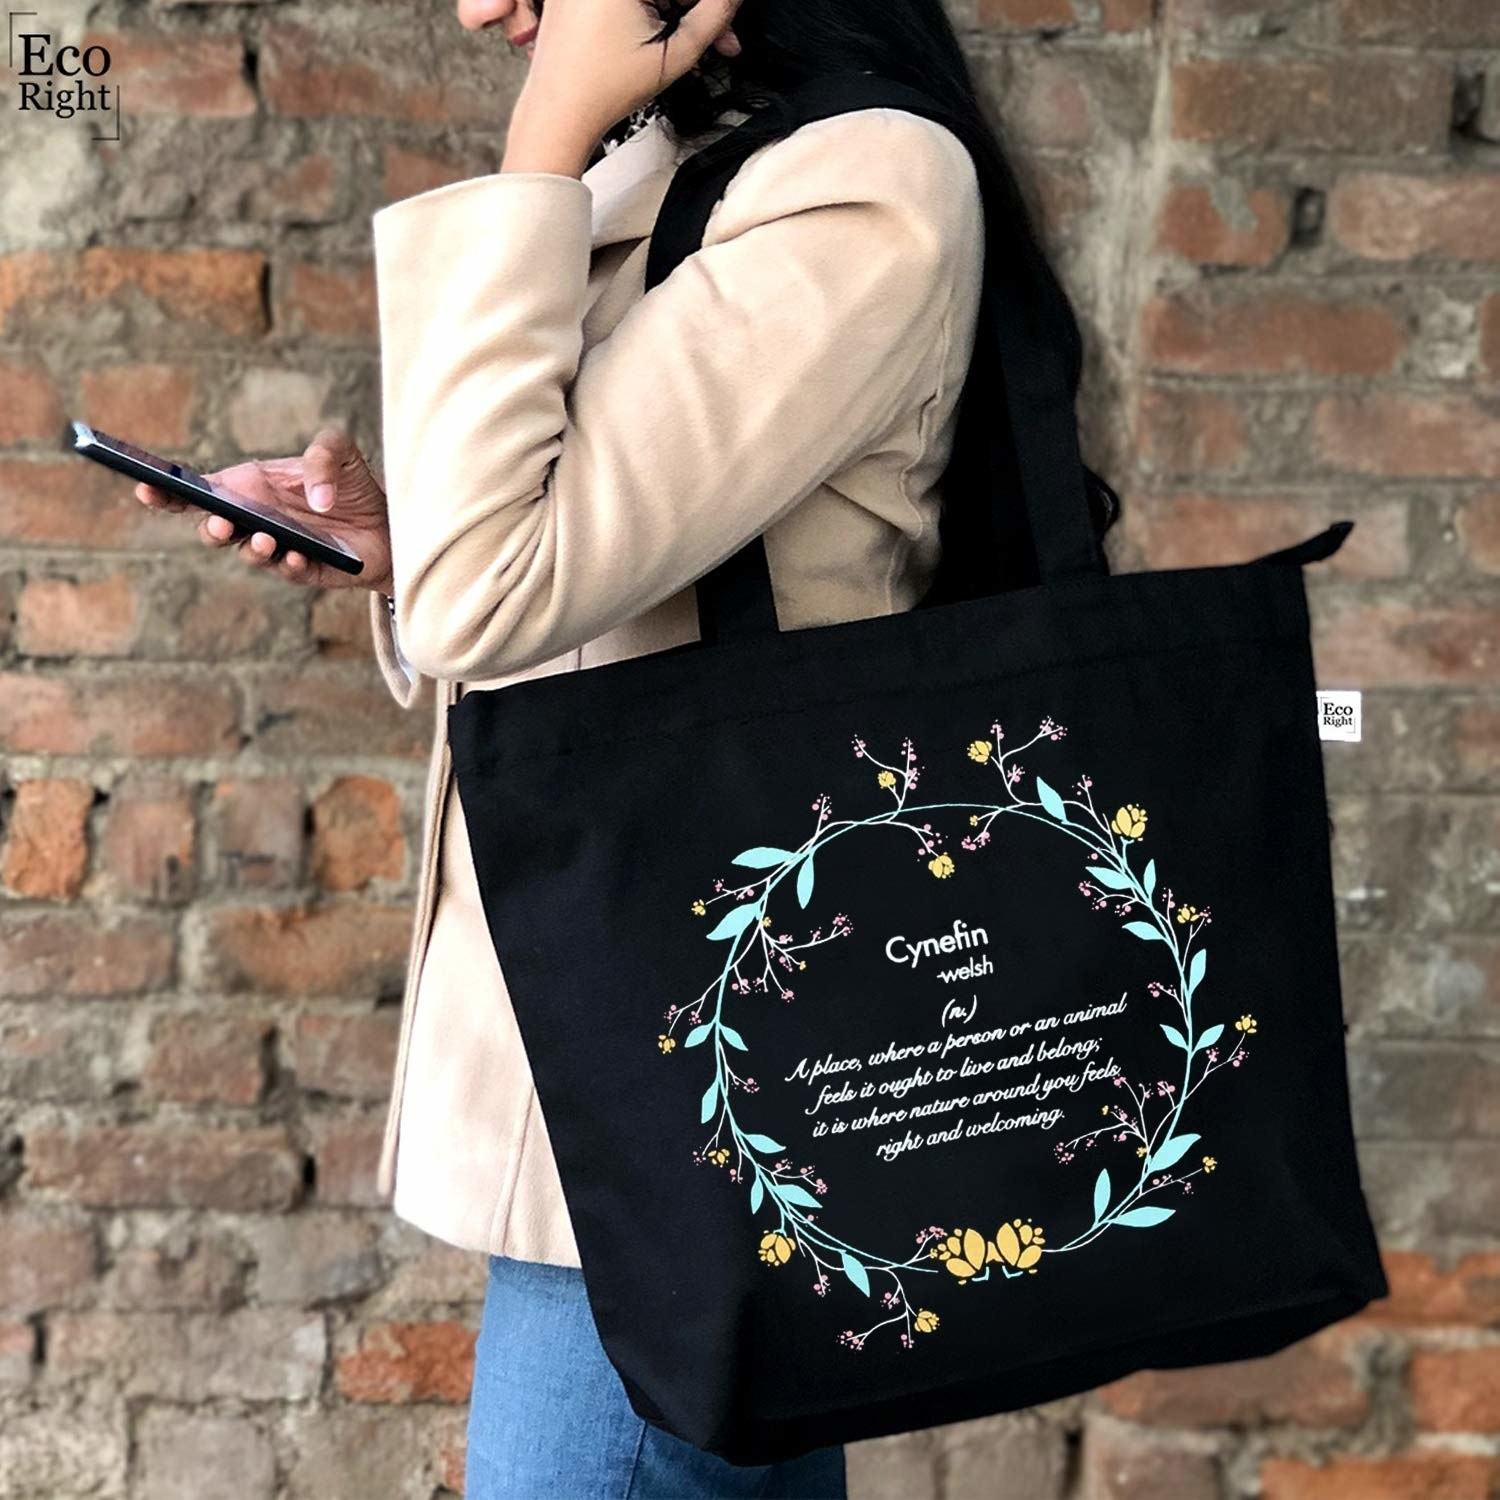 A black tote bag with a floral design and the meaning of 'cynefin' written on it.